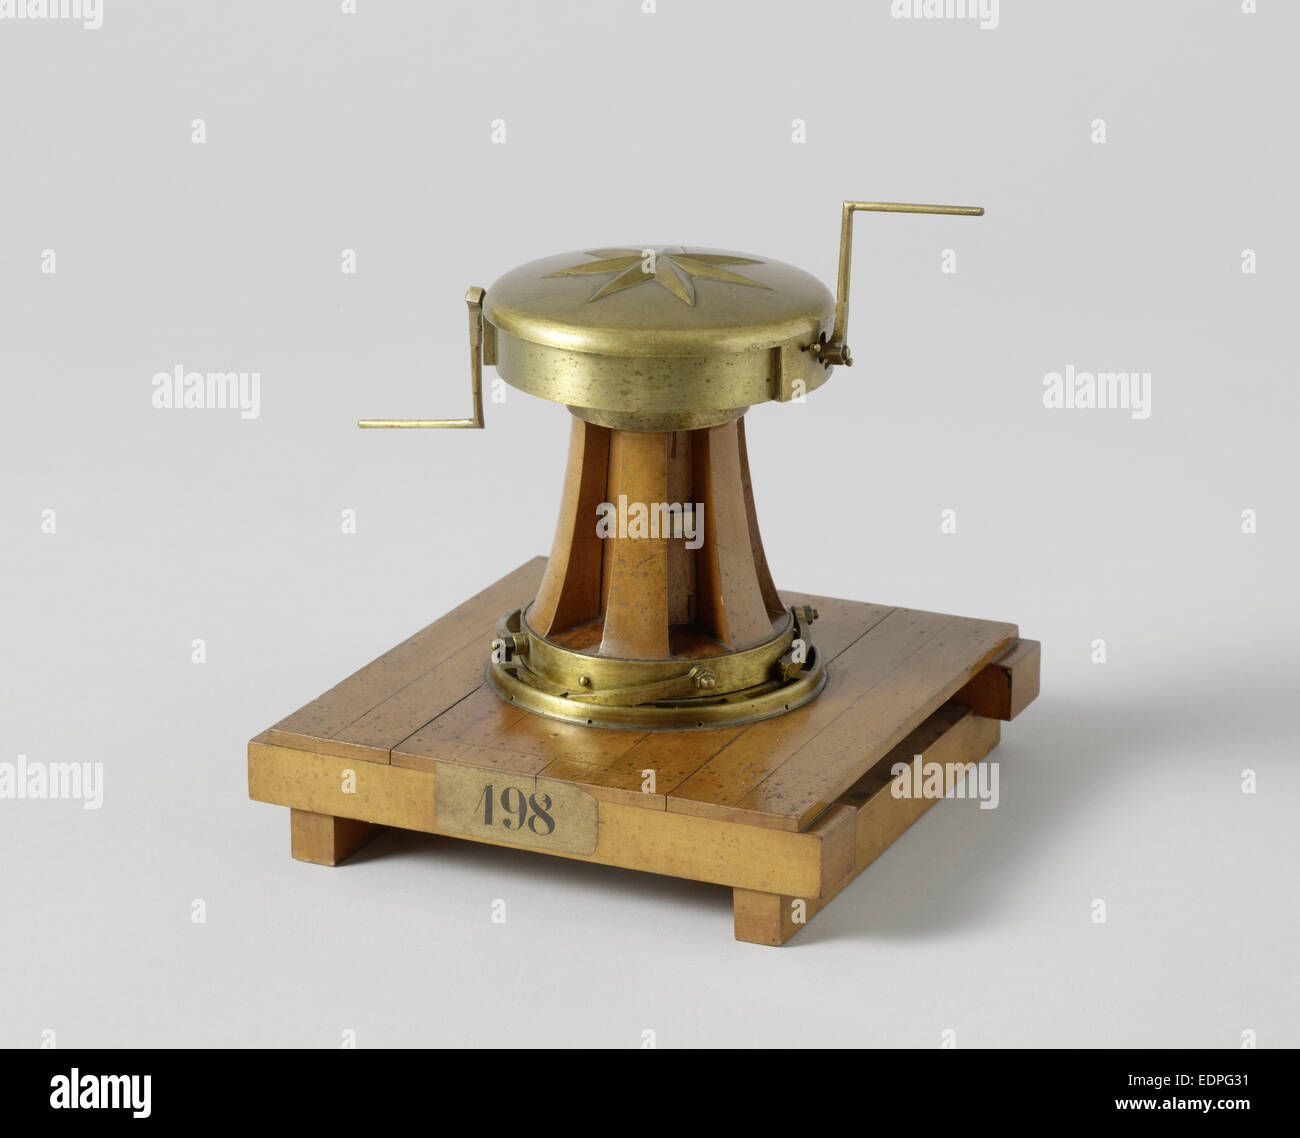 Winch Stock Photos Amp Winch Stock Images Alamy